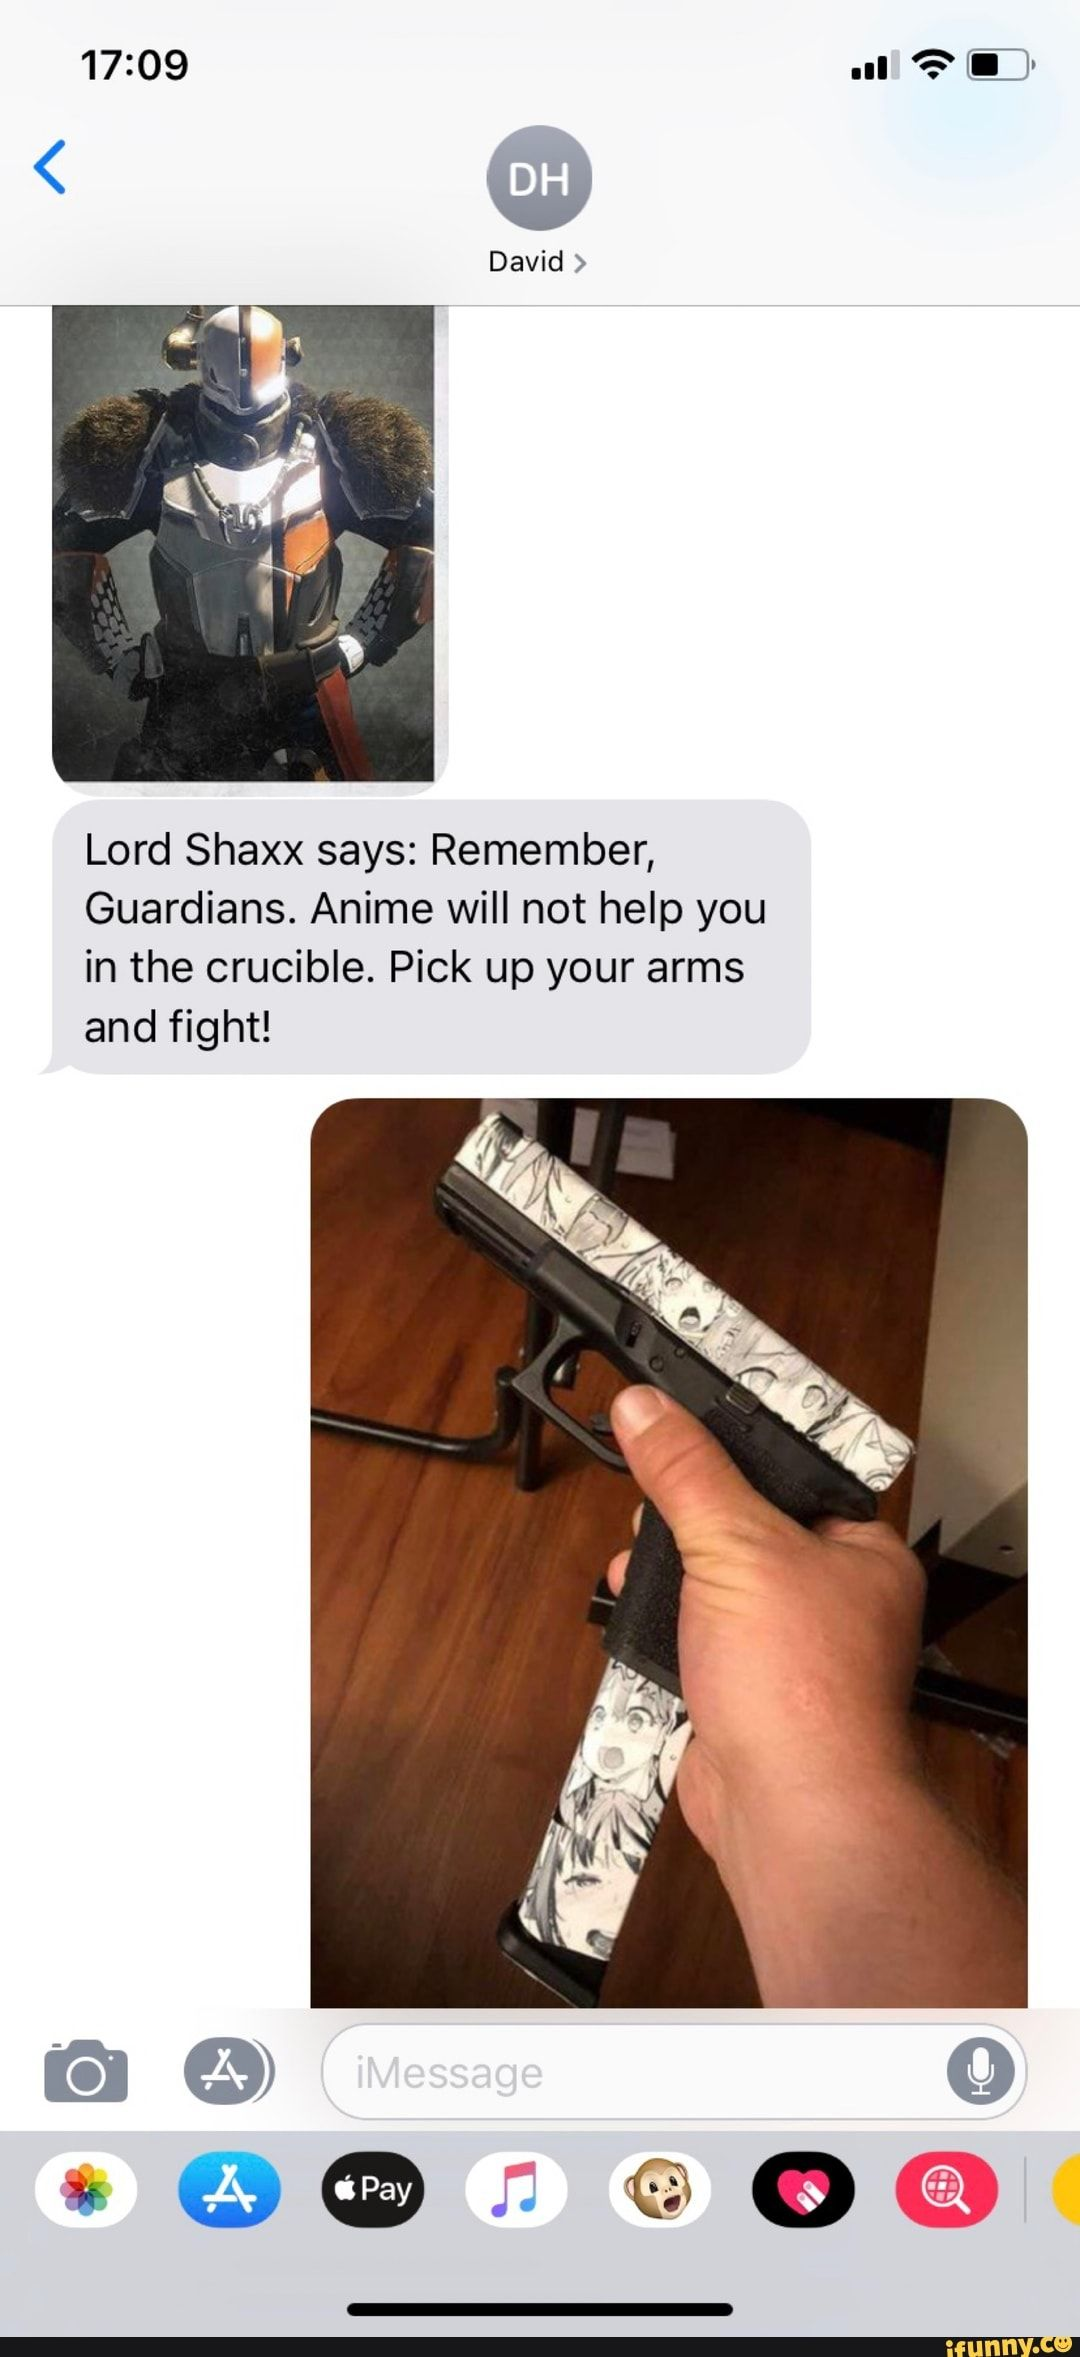 Lord Shaxx Memes : shaxx, memes, Shaxx, Says:, Remember,, Guardians., Anime, Crucible., Fight!, IFunny, Destiny, Bungie,, Lord,, Funny, Posts